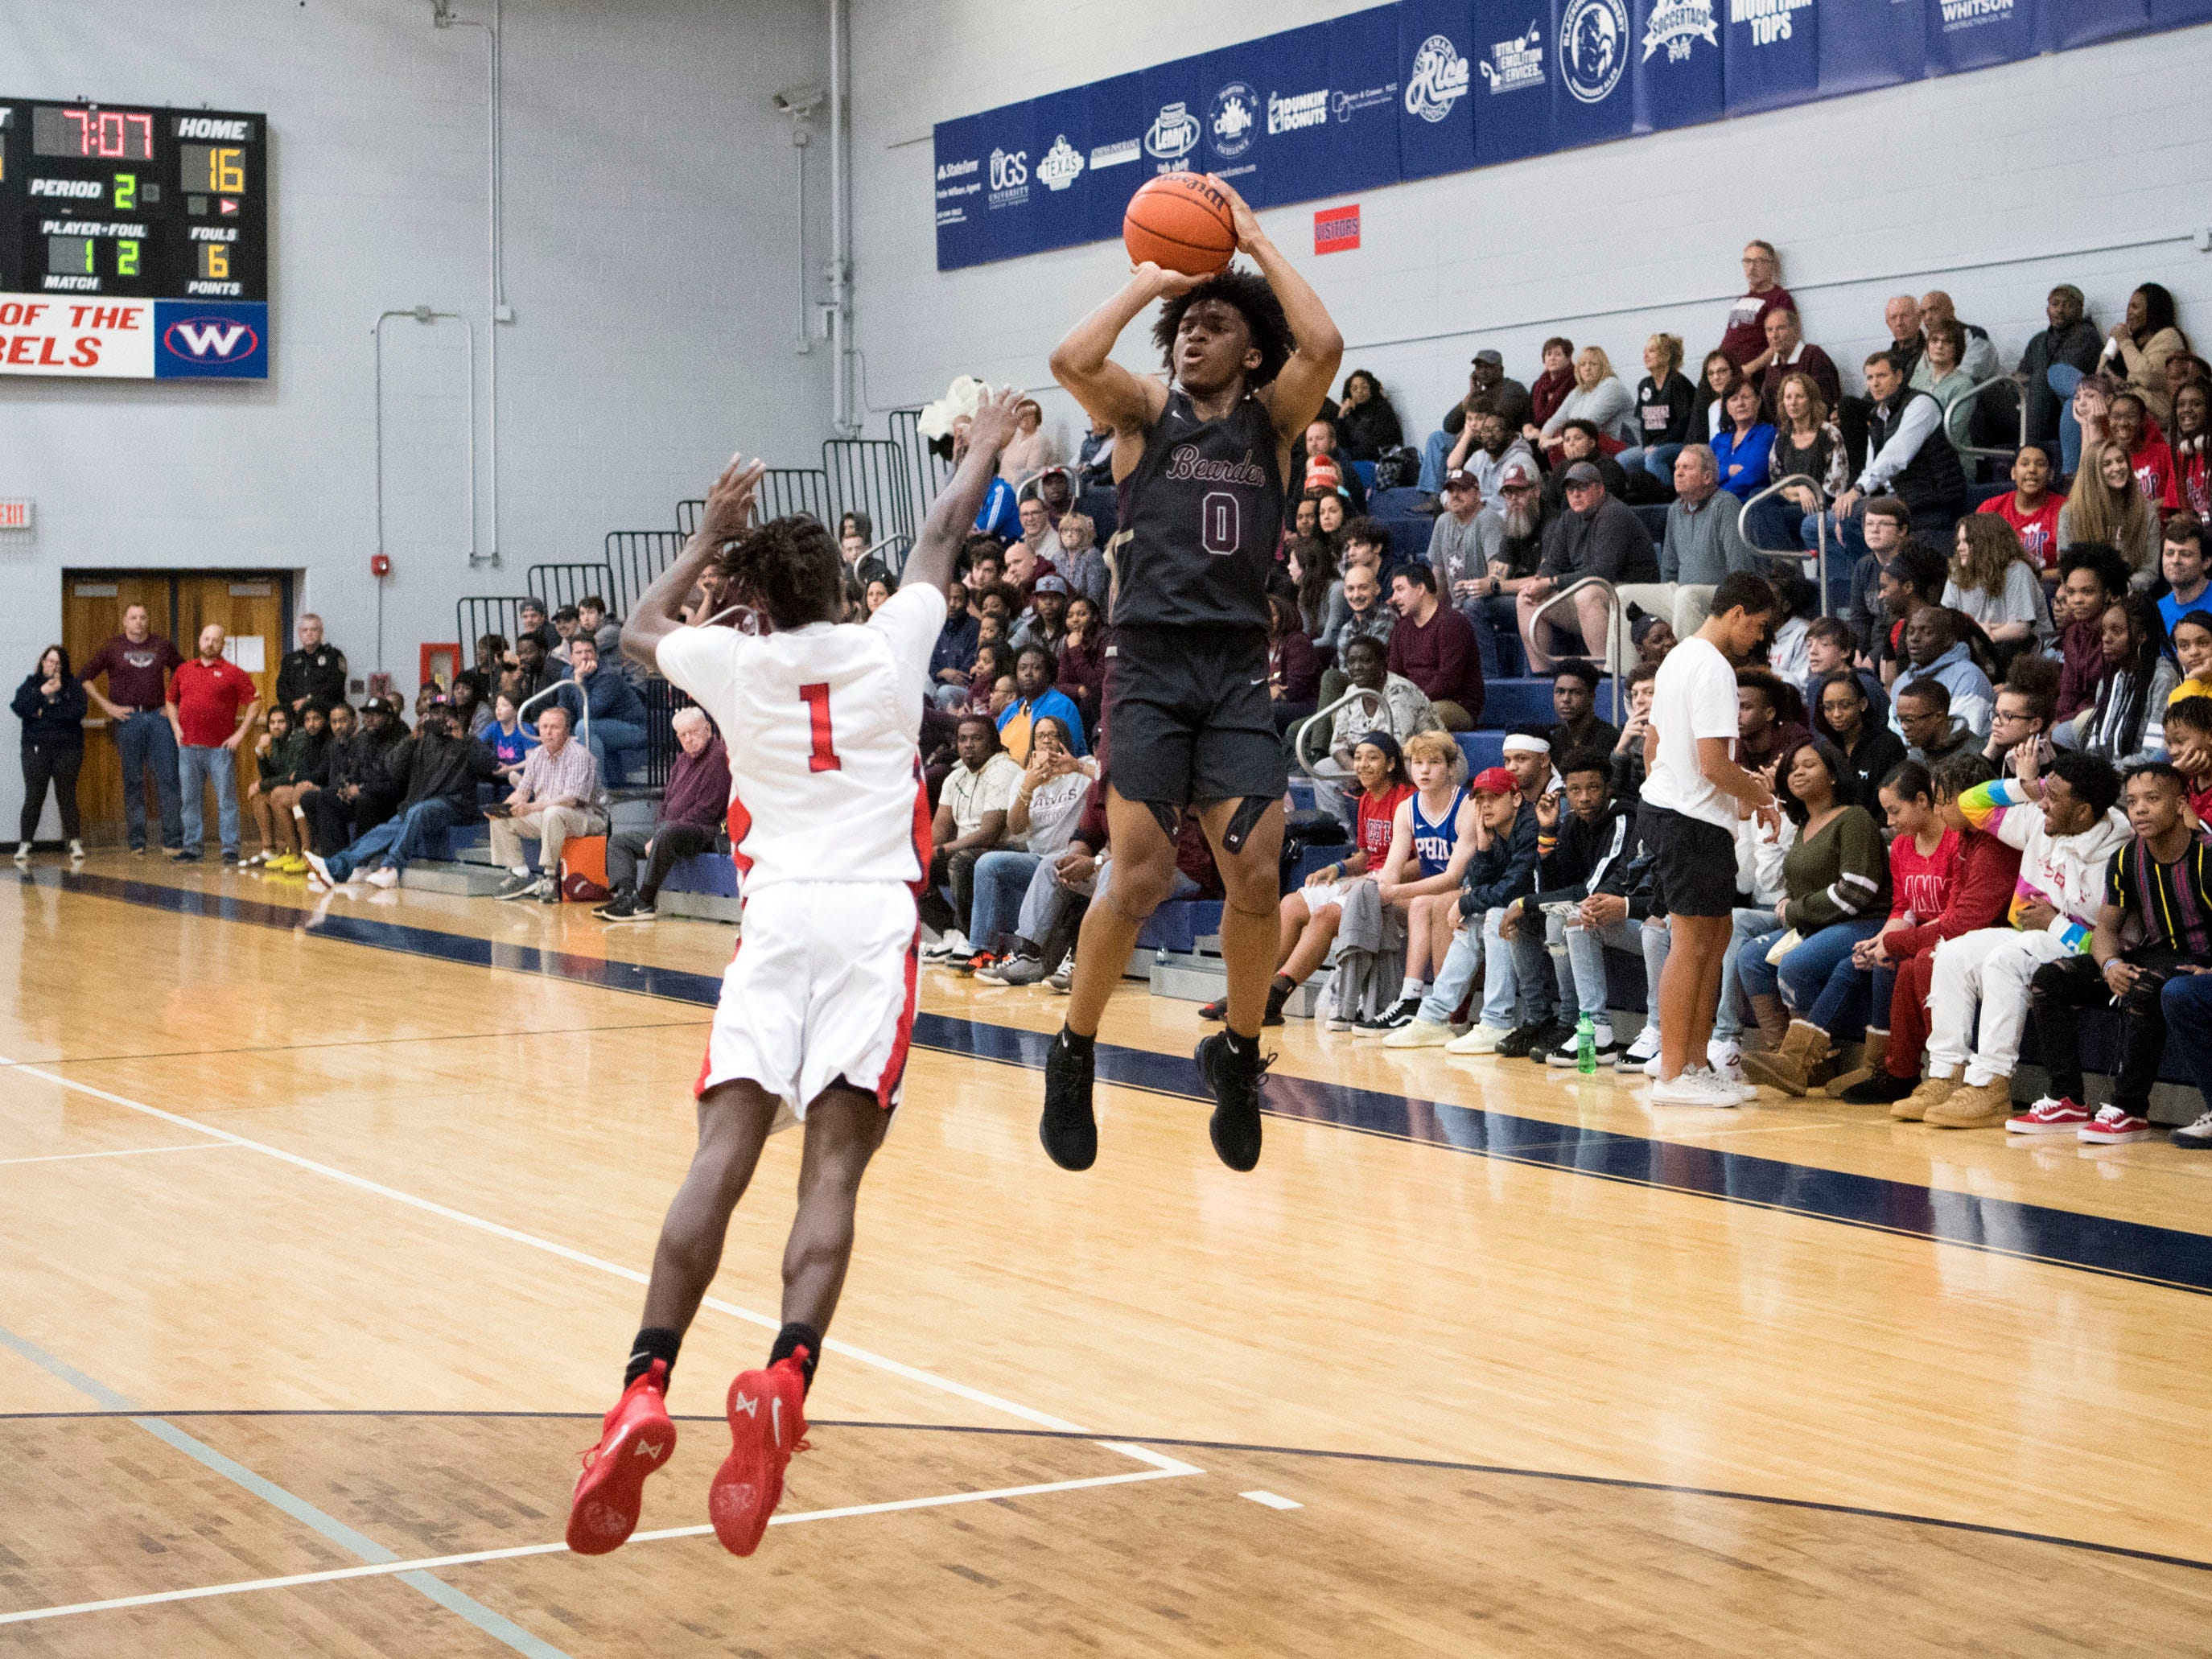 Bearden's Ques Glover (0) on a 3-point attempt while guarded by West's Michael Webb (1) on Tuesday, January 8, 2019.